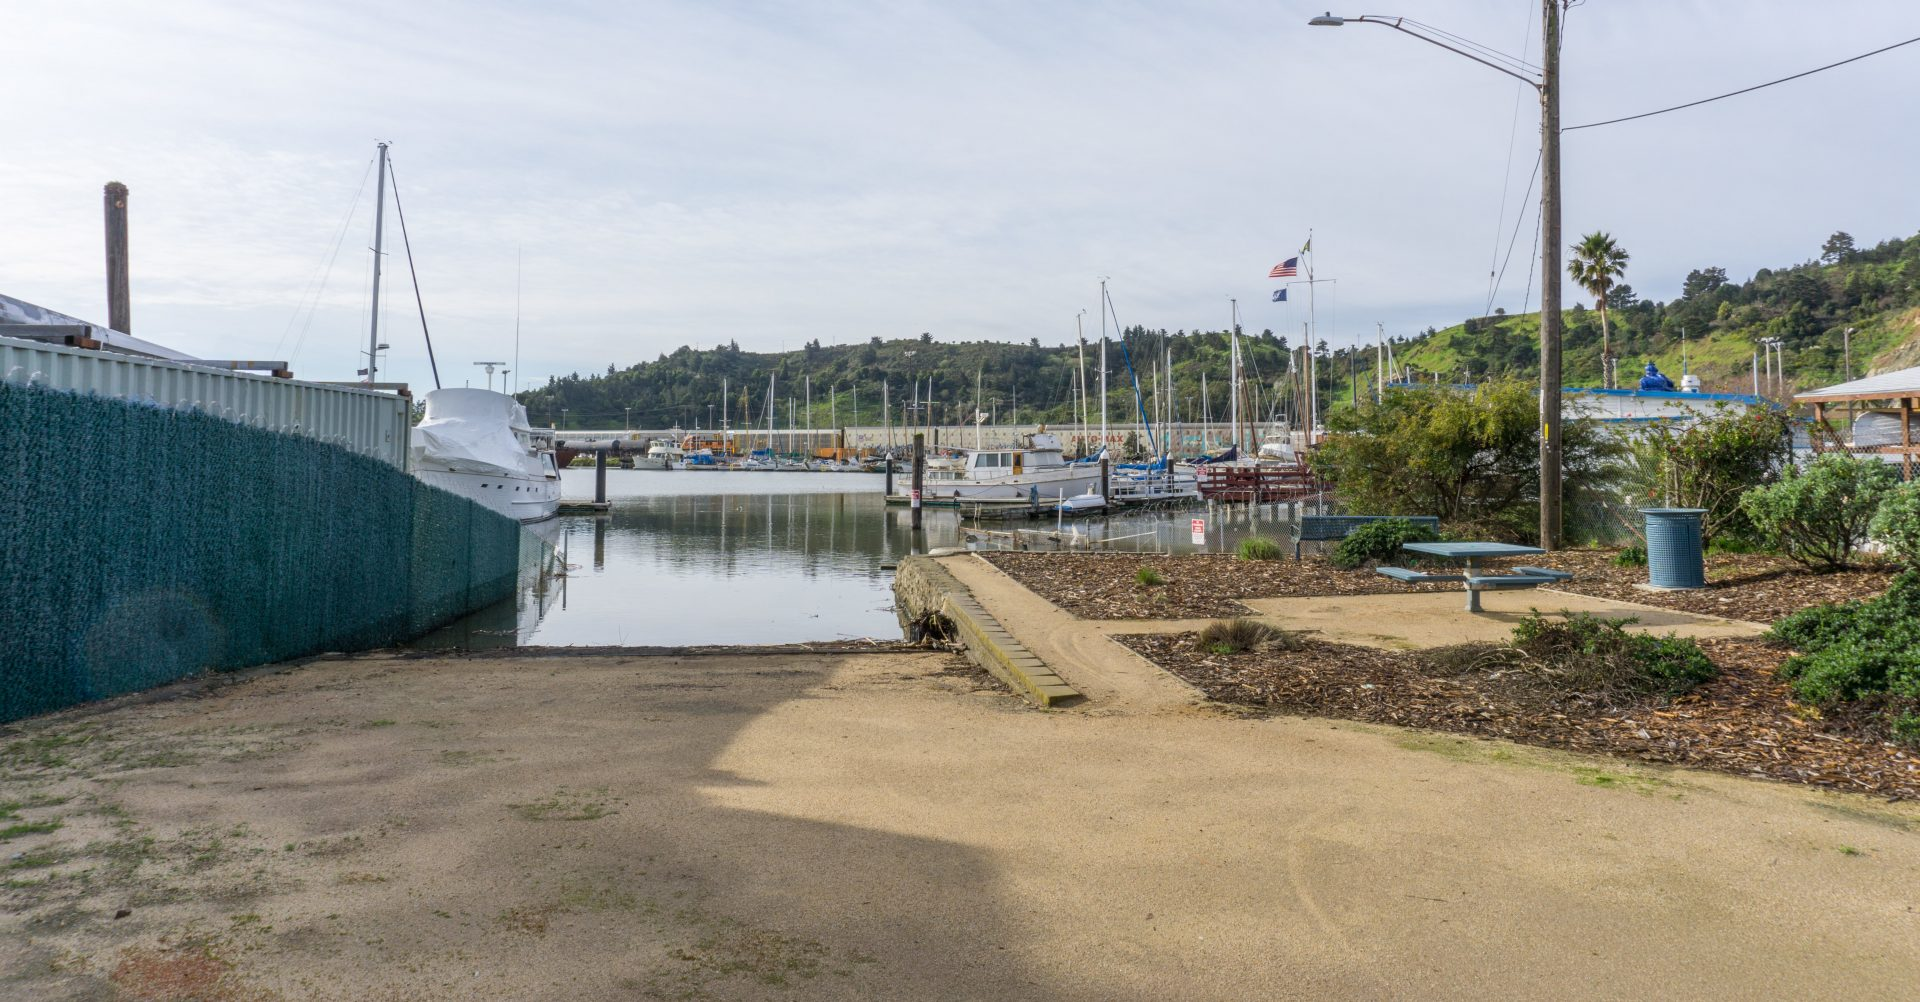 Board ramp descends into water, marina beyond